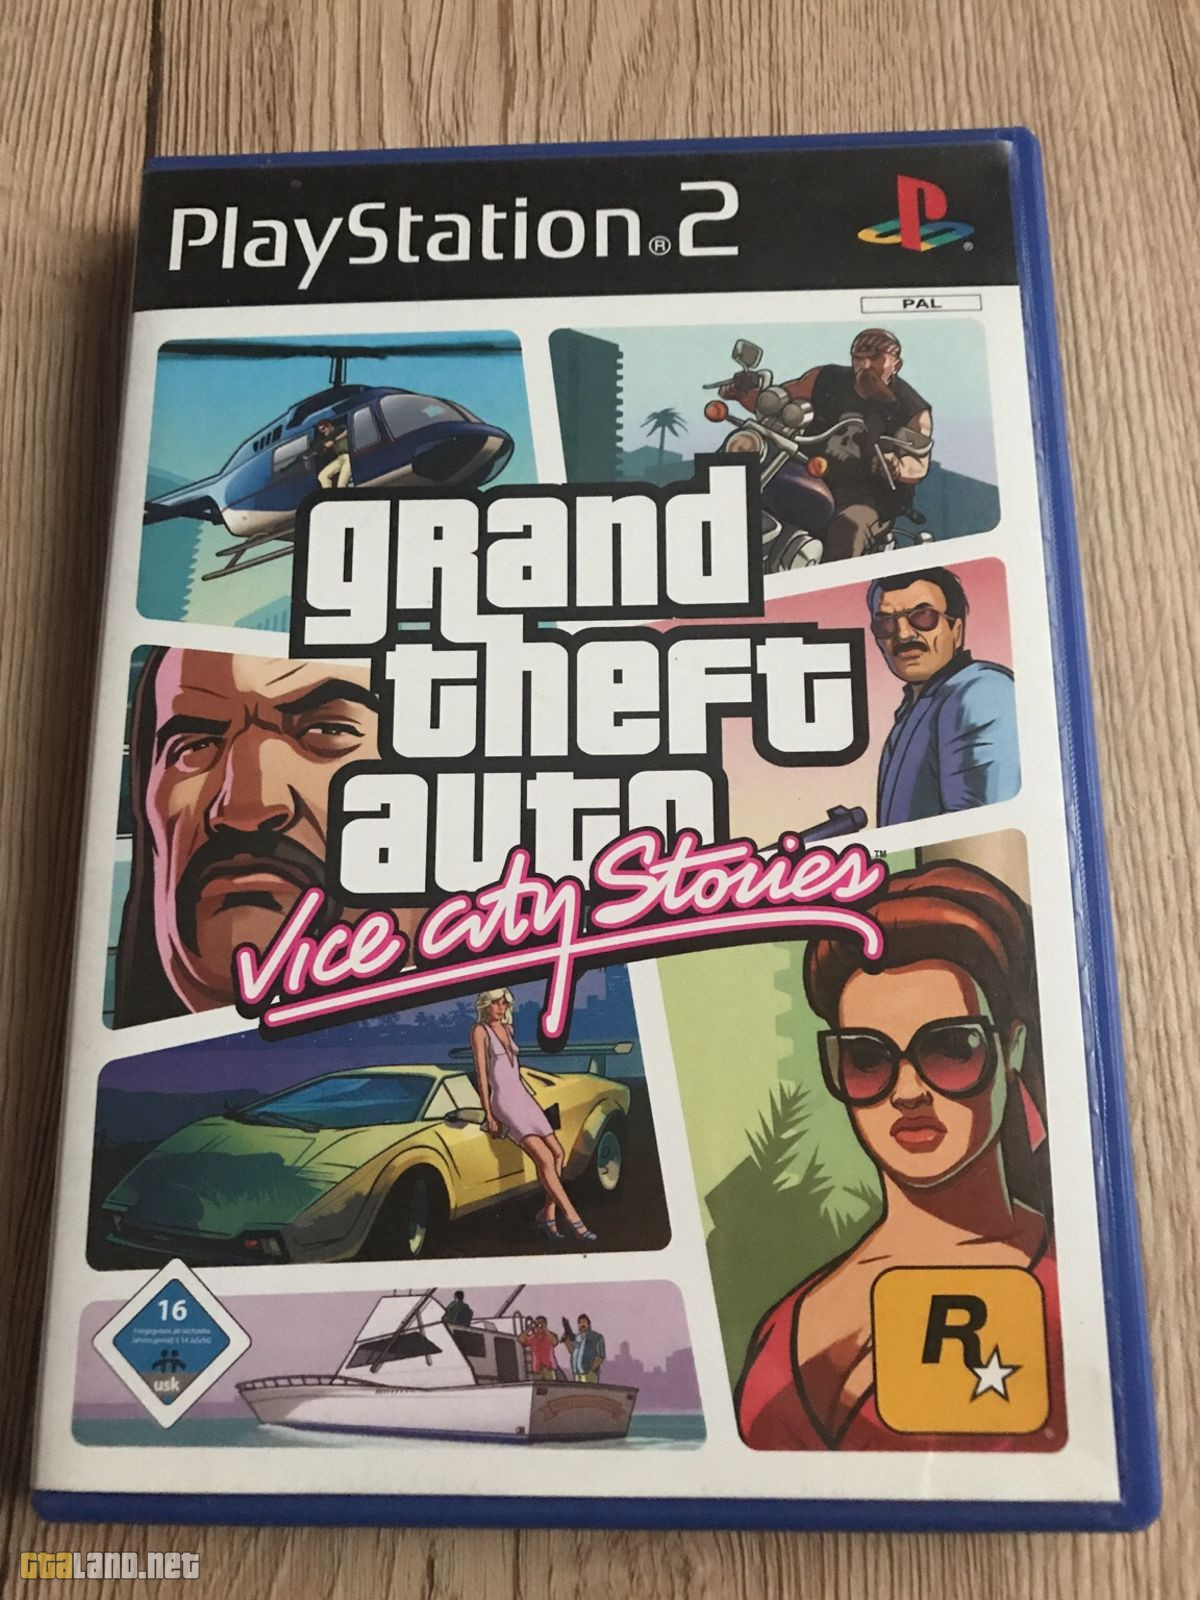 Grand Theft Auto Vice City Stories PlayStation 2 Cheat Codes - GTALand.net